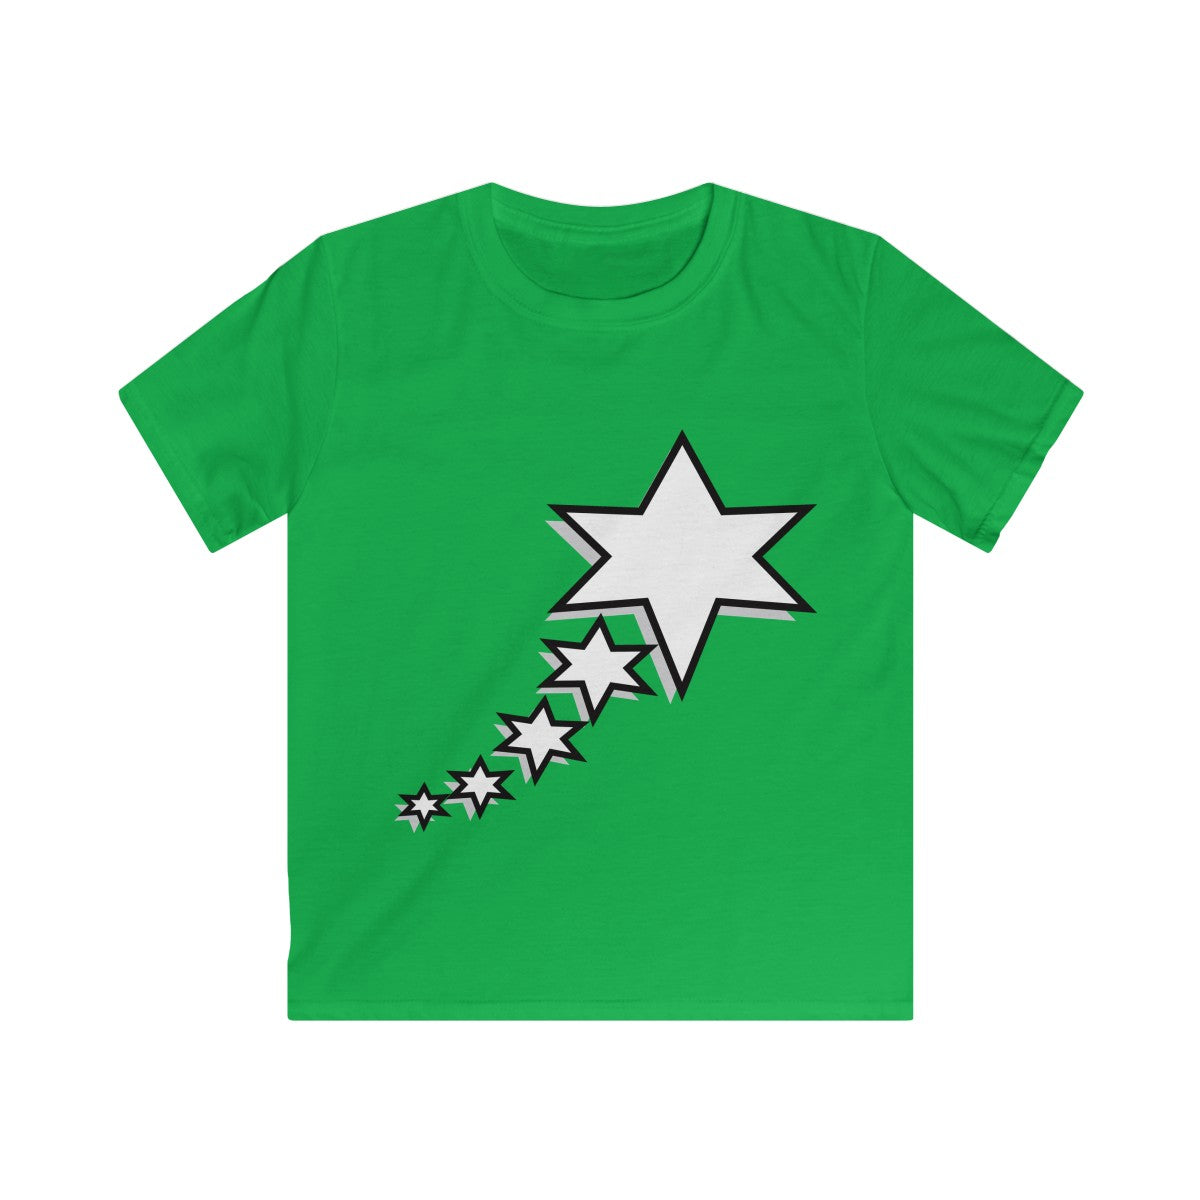 Kids Softstyle Tee - 6 Points 5 Stars (White)